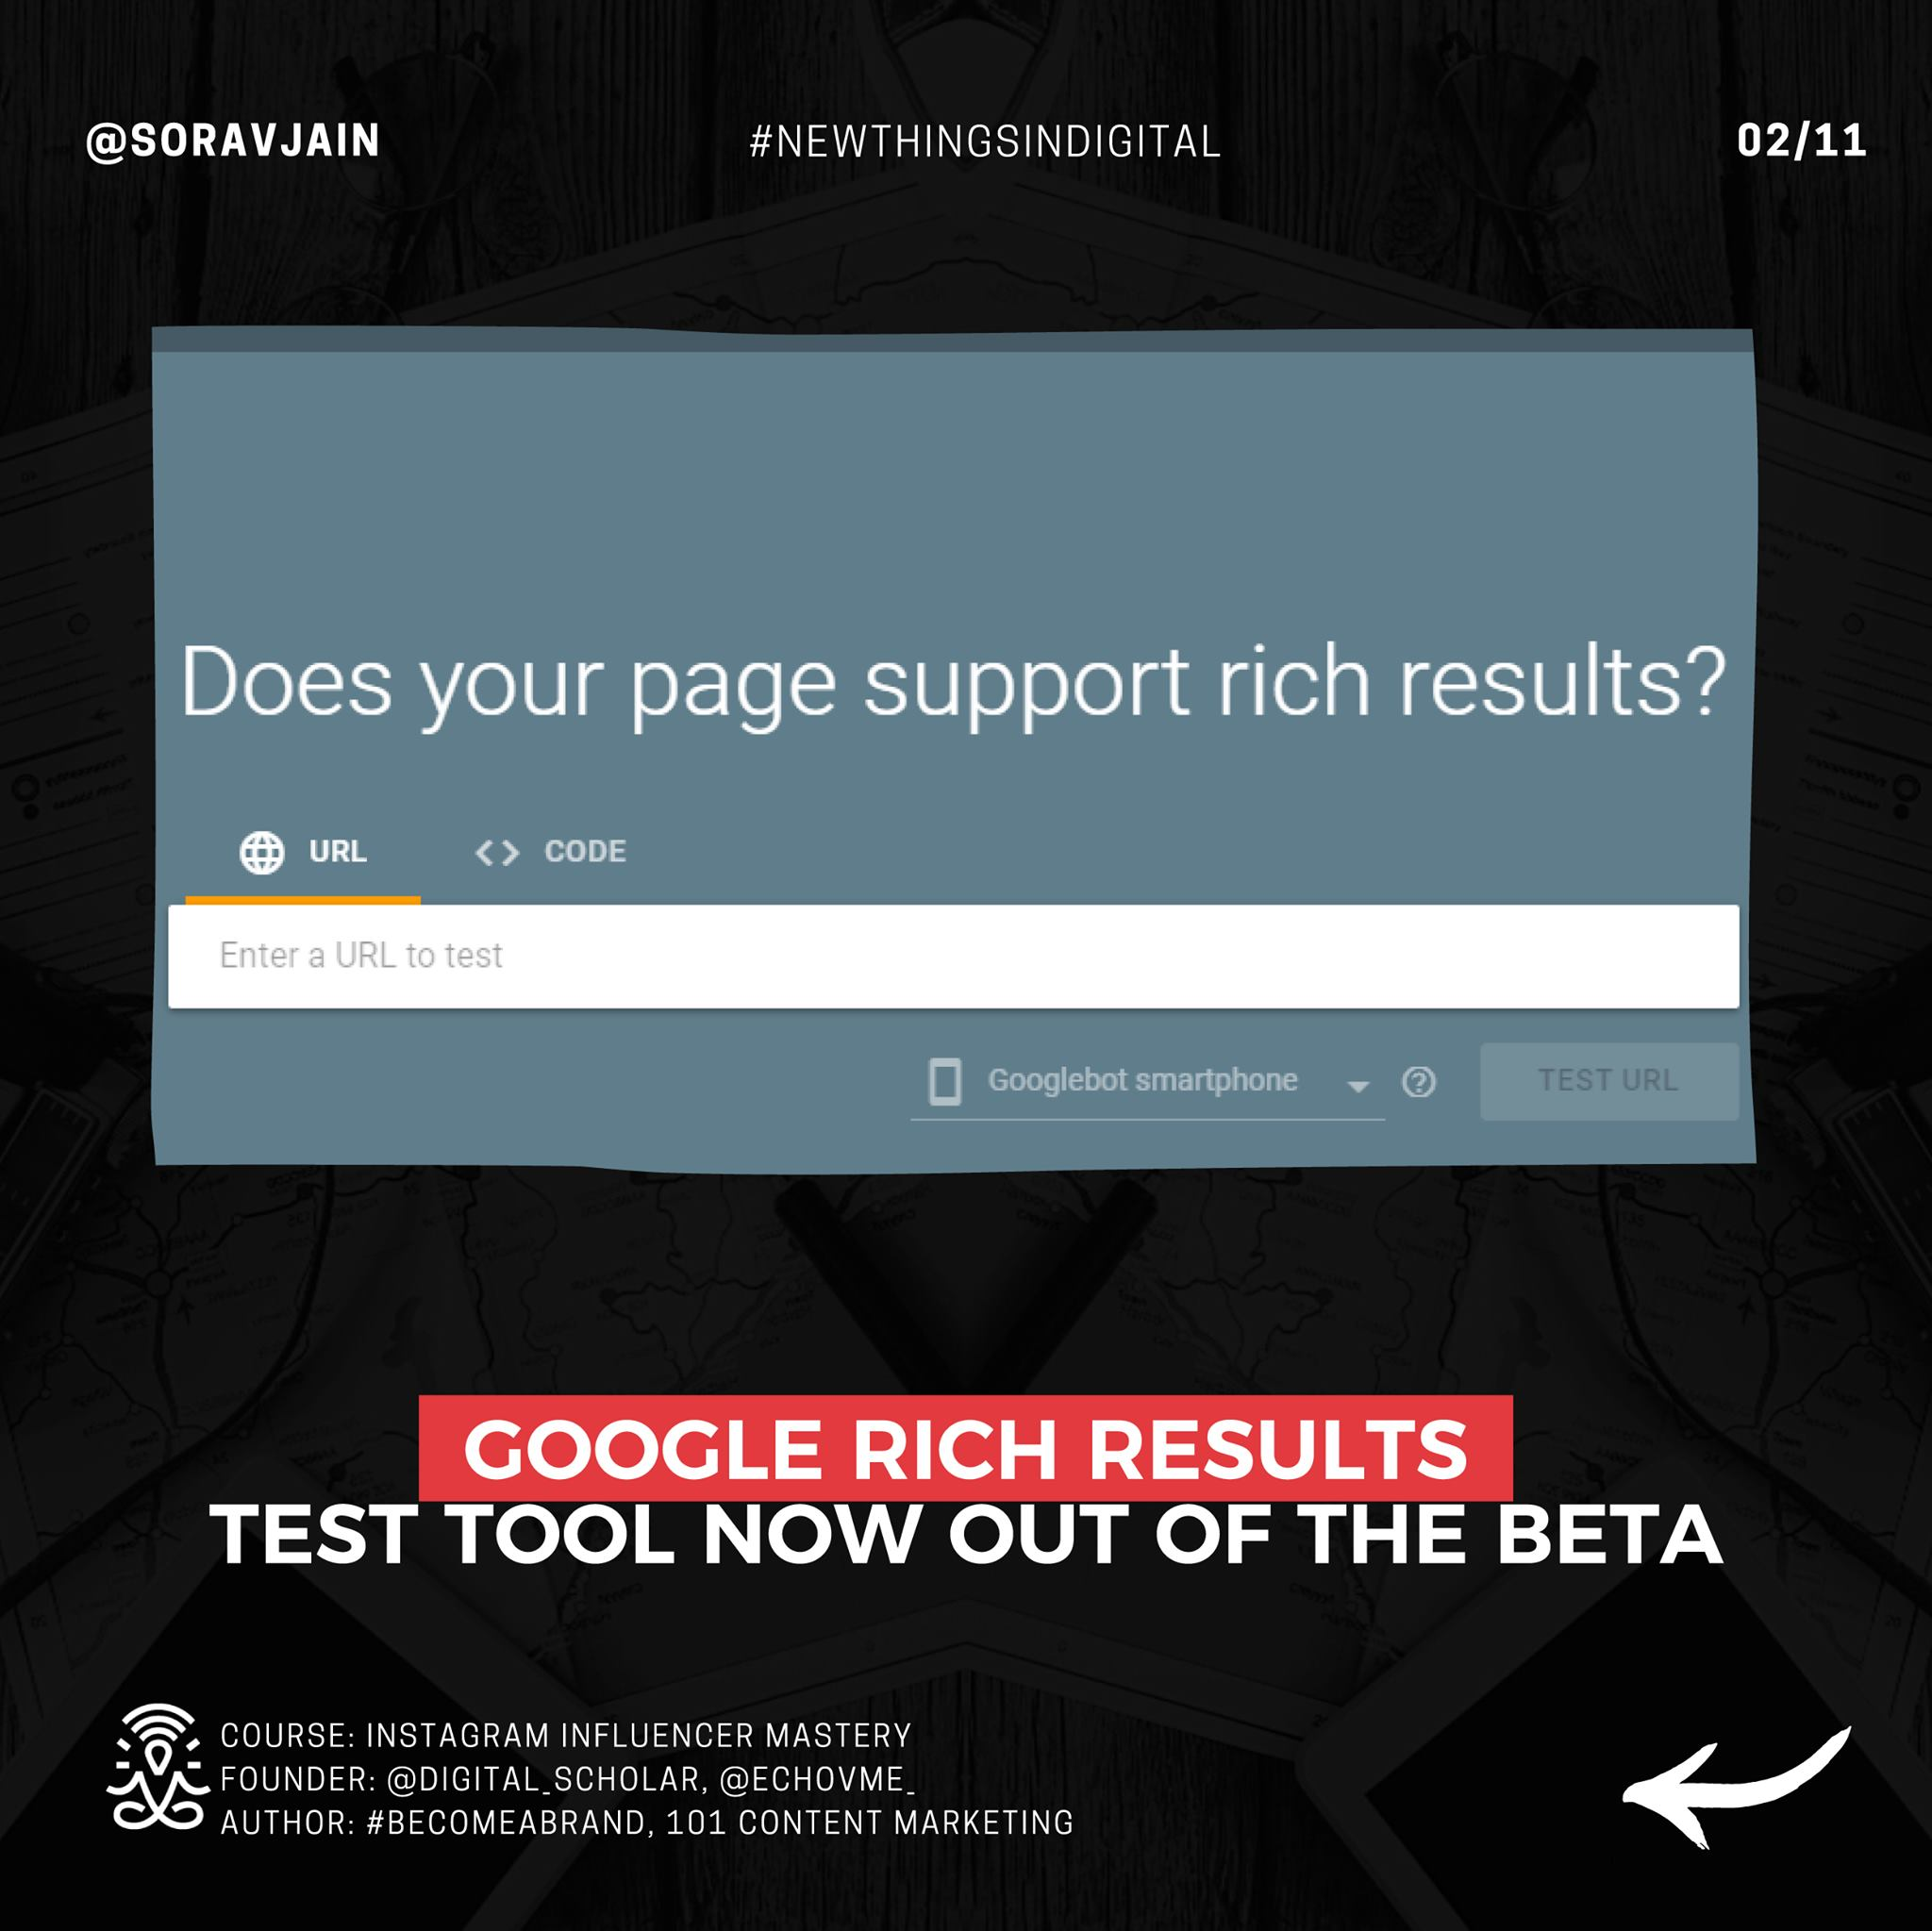 Google Rich Results Test tool now out of the beta